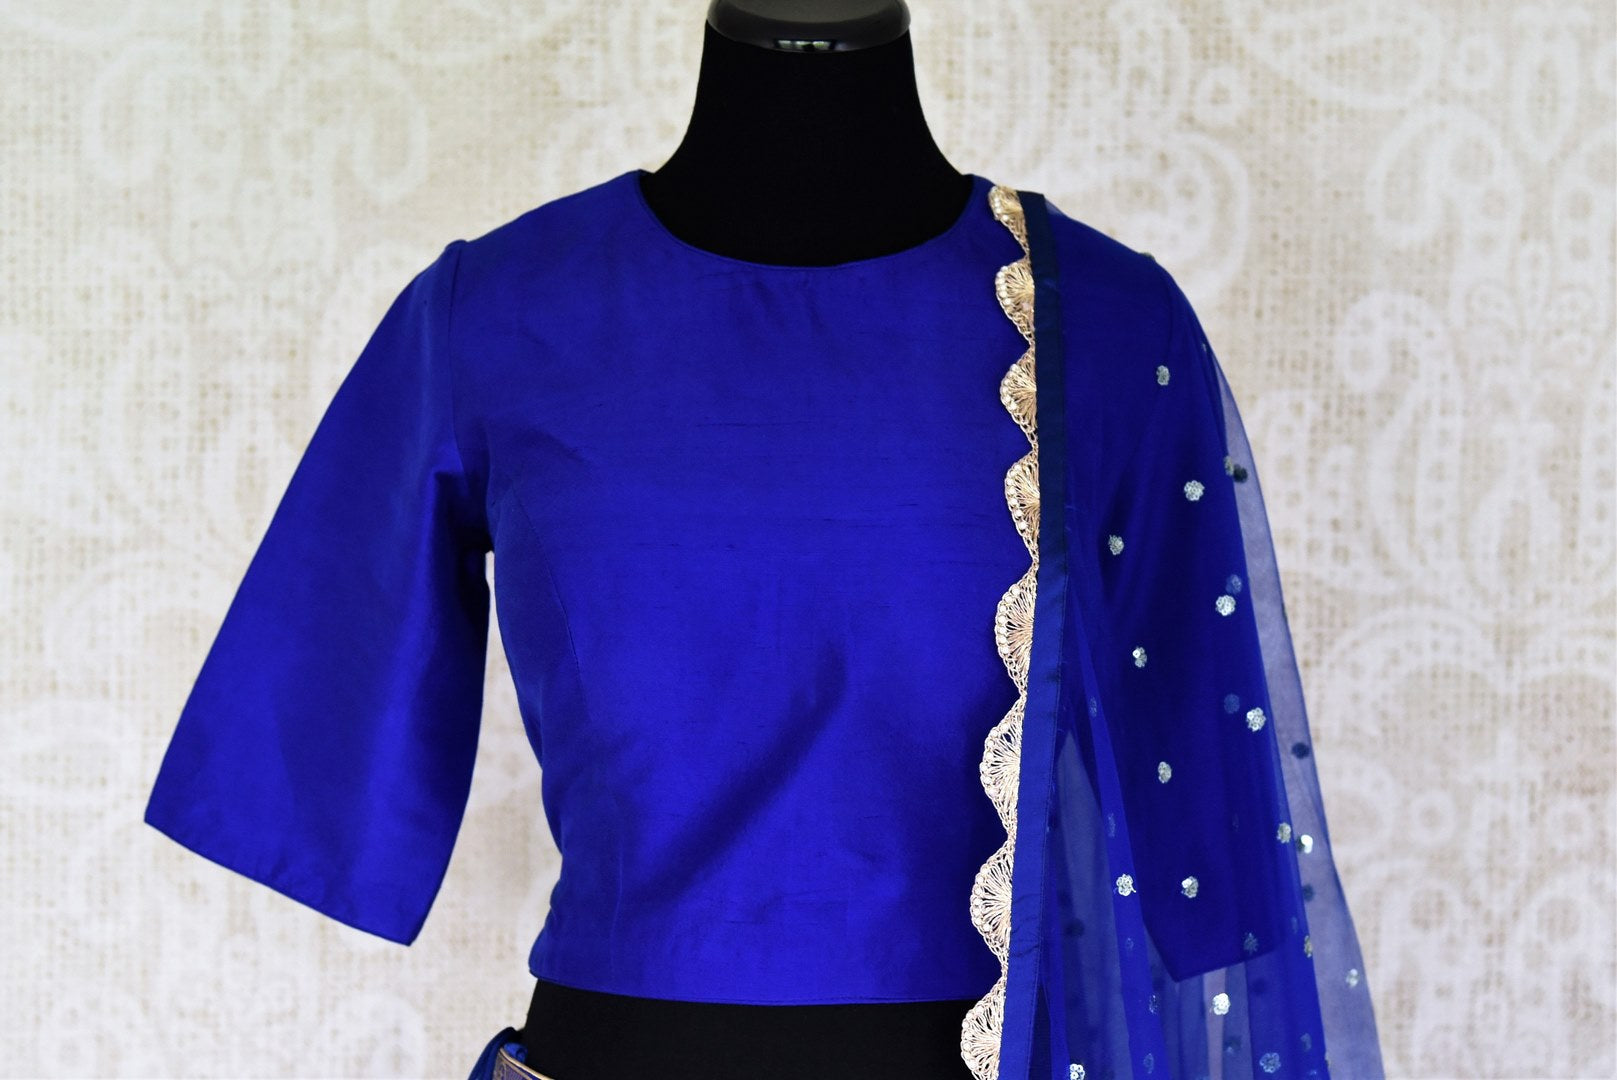 Buy ethnic blue handloom Banarasi lehenga online in USA with dupatta. Make every occasion special with beautiful Indian dresses, wedding lehengas from Pure Elegance Indian fashion store in USA. You can also browse through our website and shop online.-front